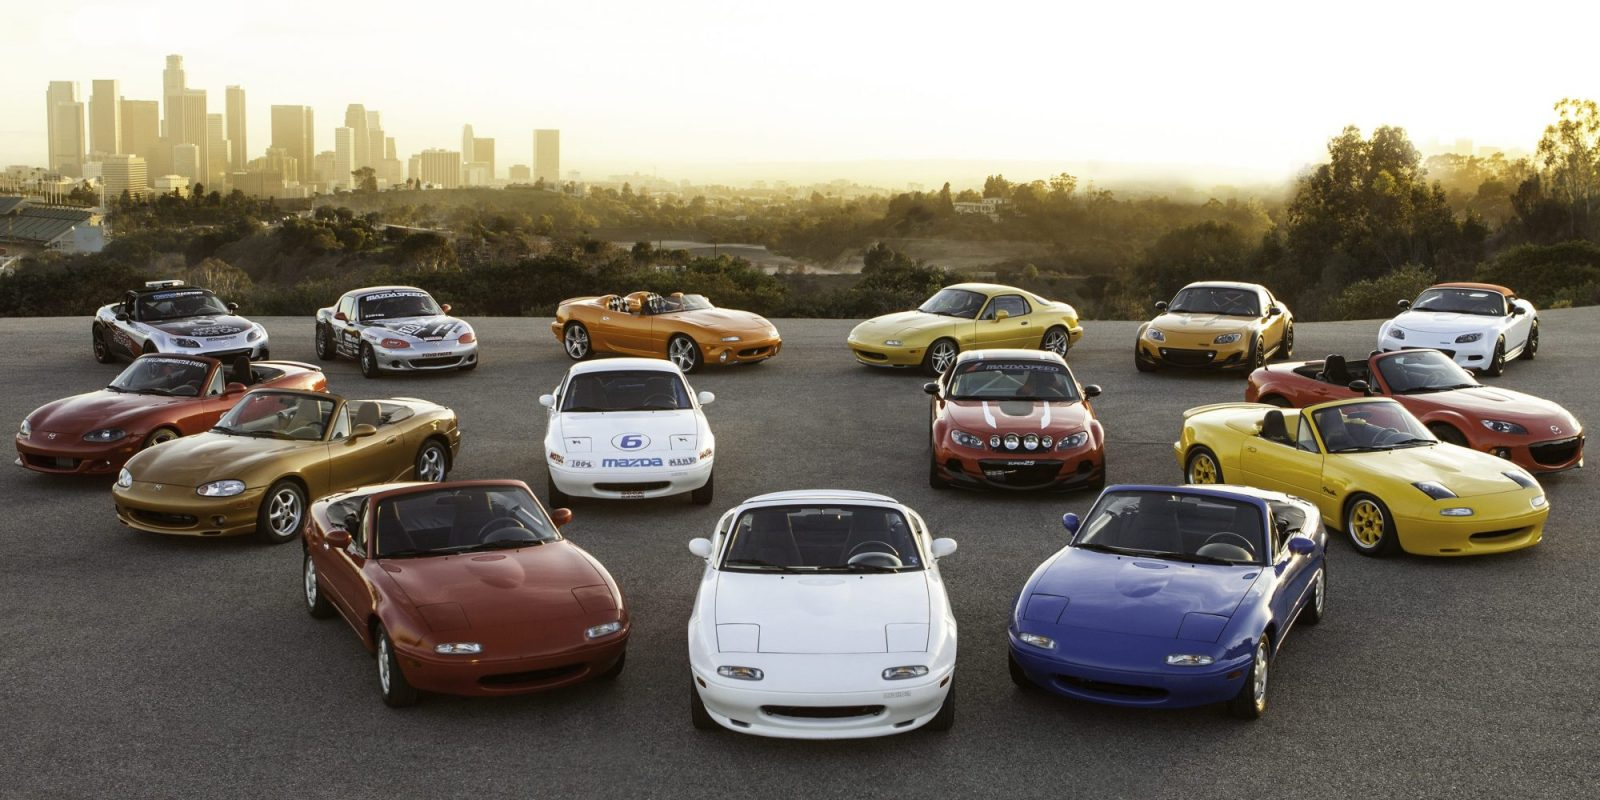 Will the Miata go electric? Mazda's considering it